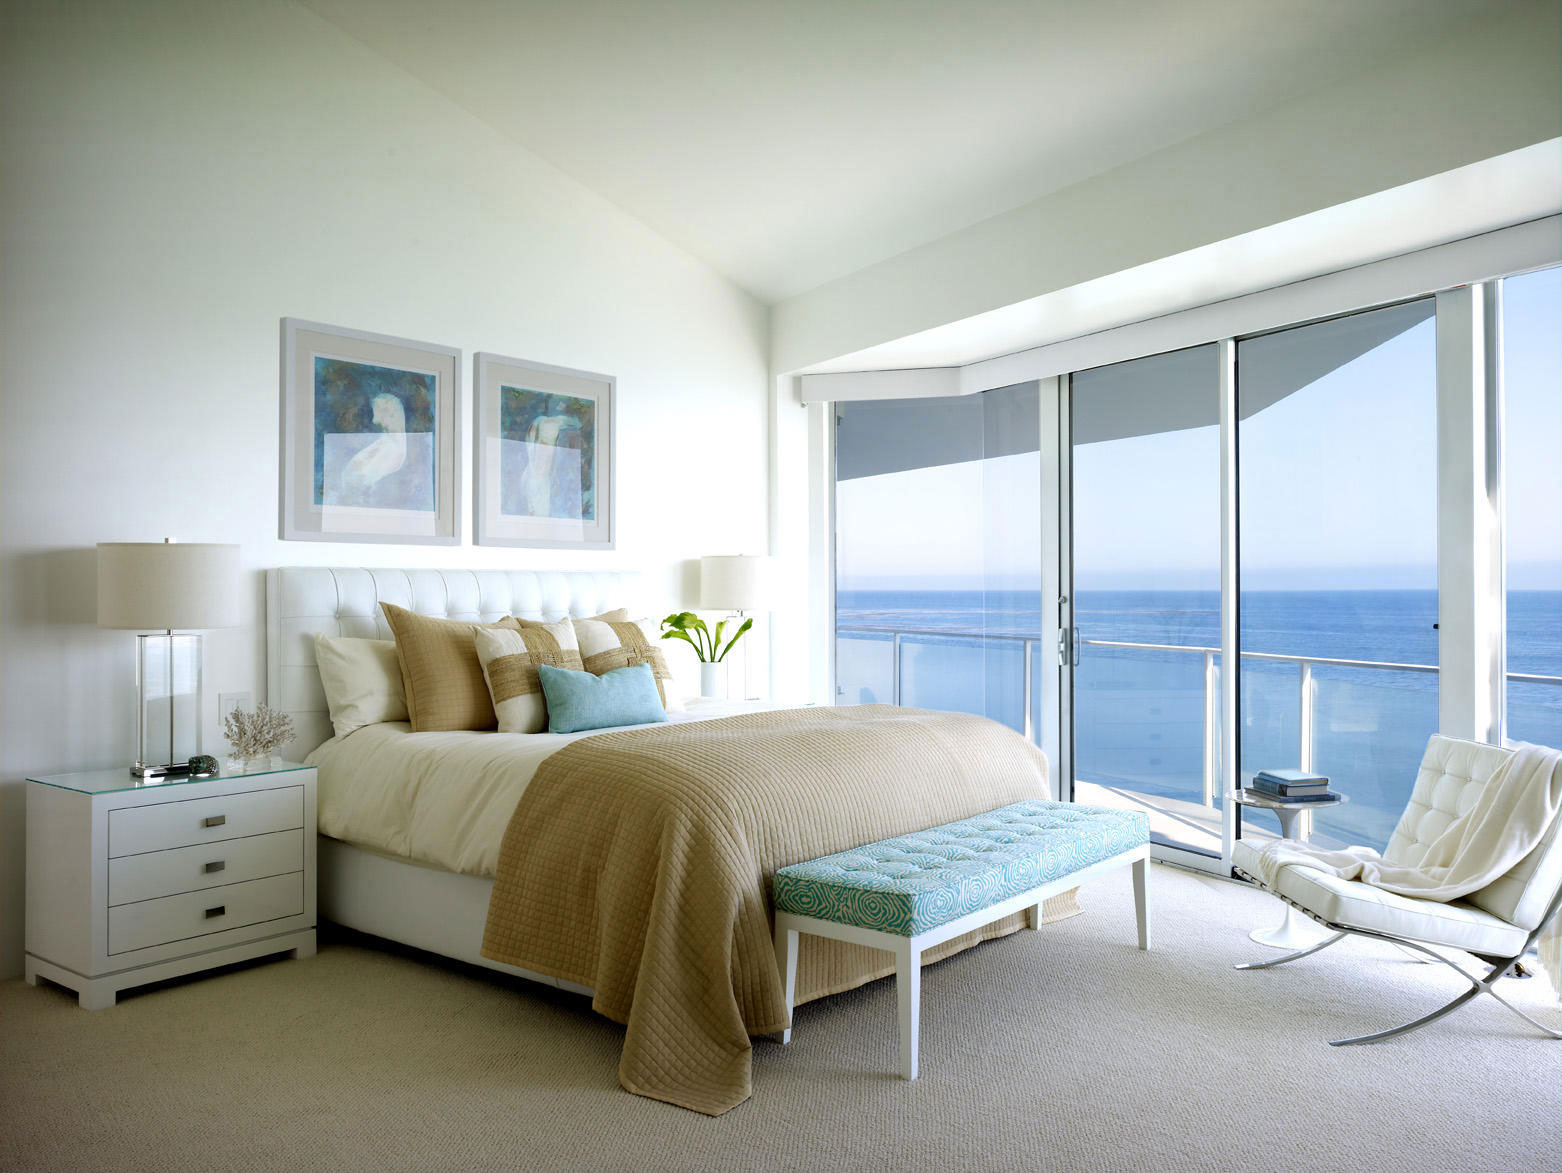 Bedroom Furniture For Beach House Ideas Style Modern Sets Inspired Themed Decor Apppie Org